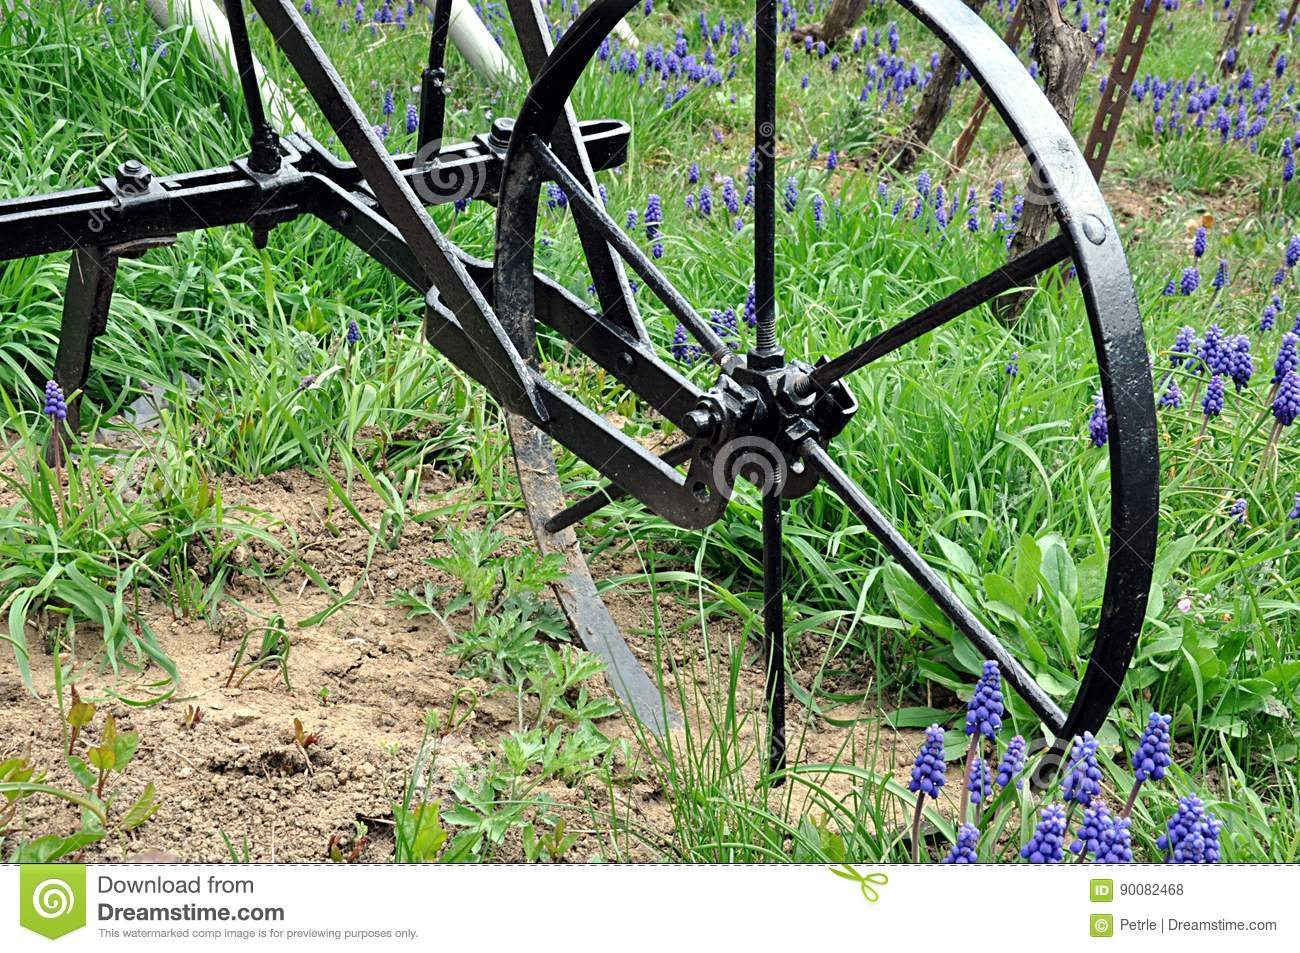 Manual garden plow stock photo  Image of agricultural - 90082468